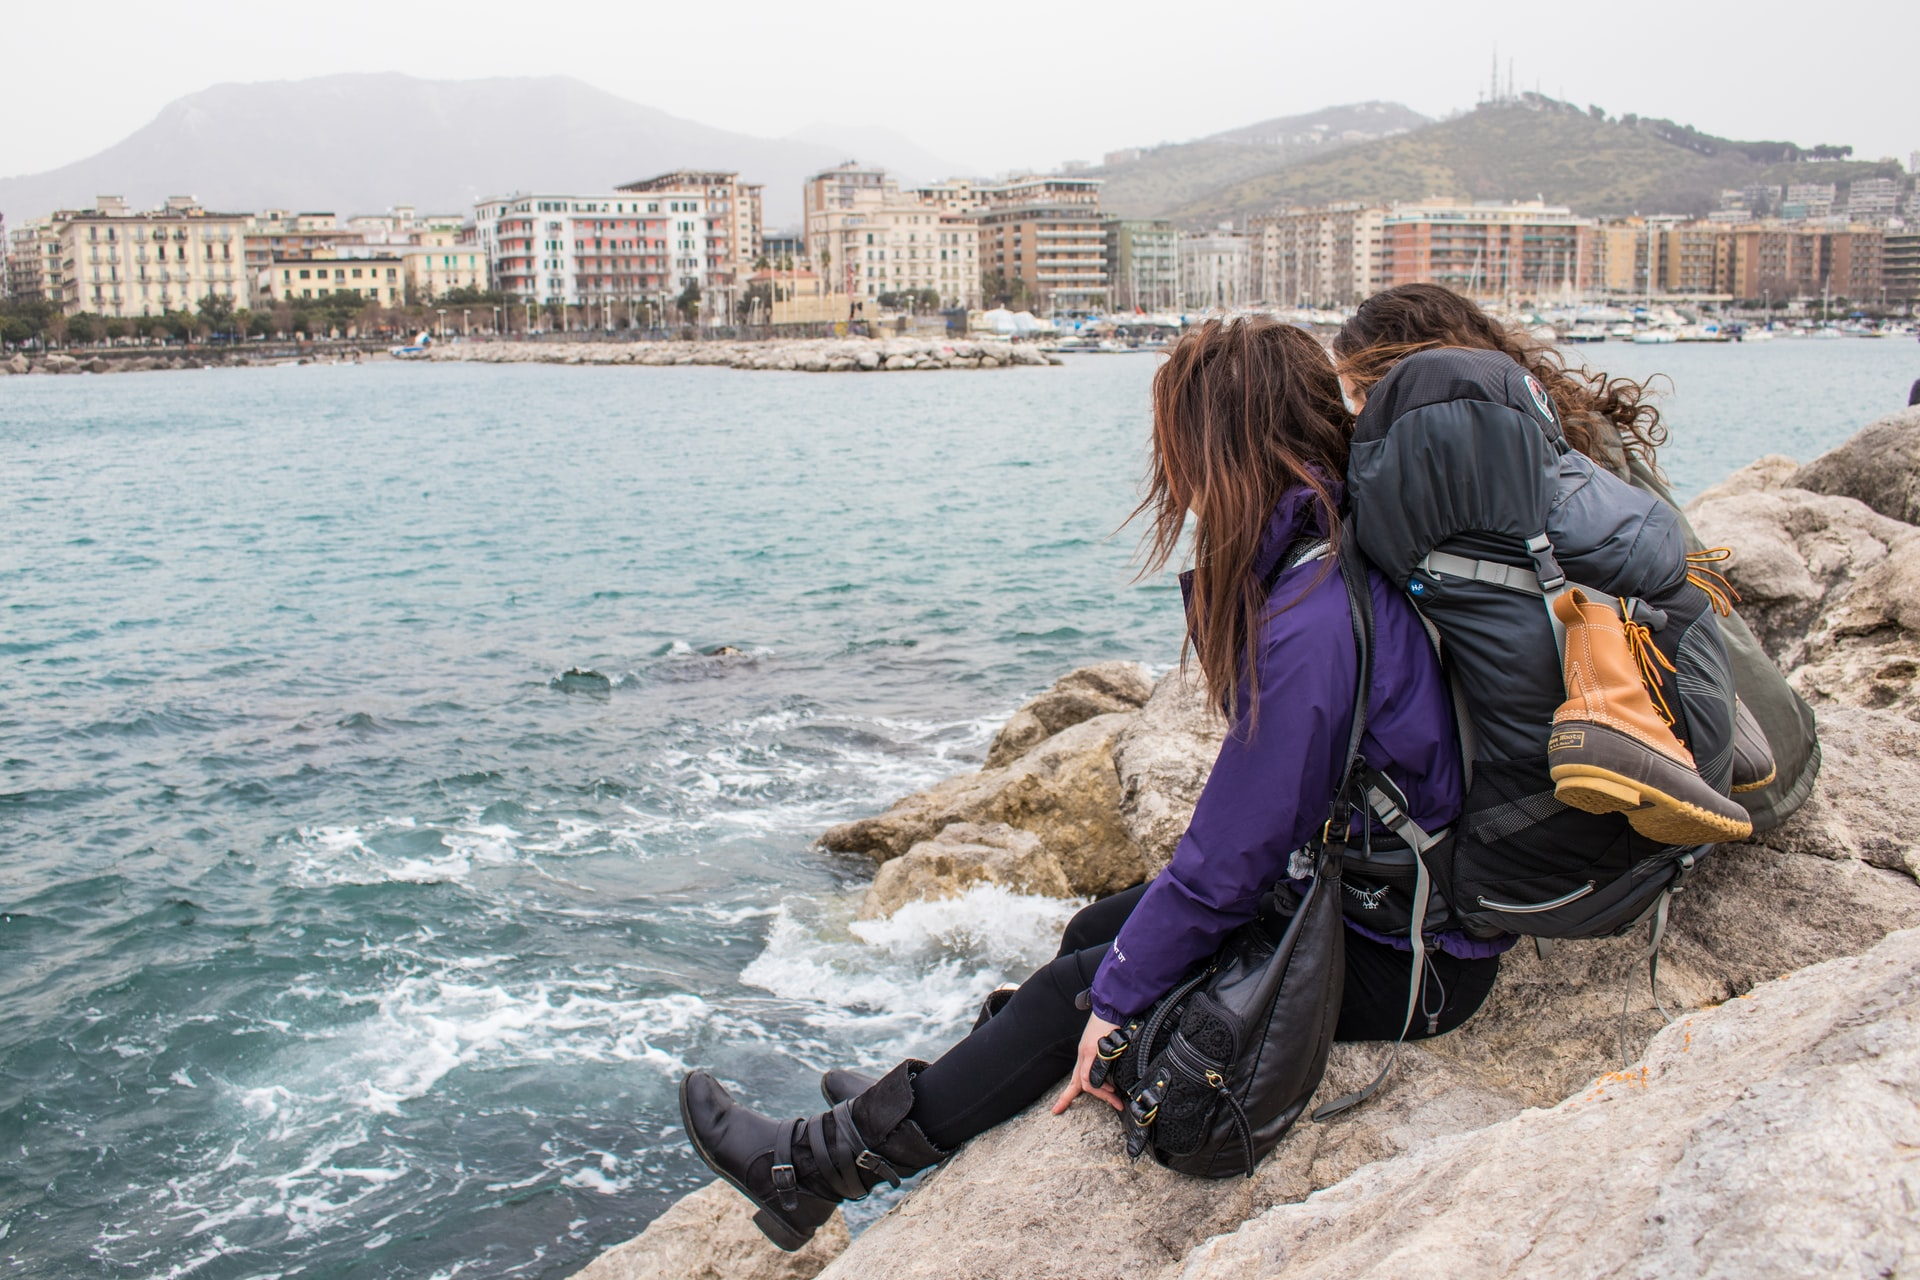 Backpackers in Salerno, Italy (photo: Annie Niemaszyk)